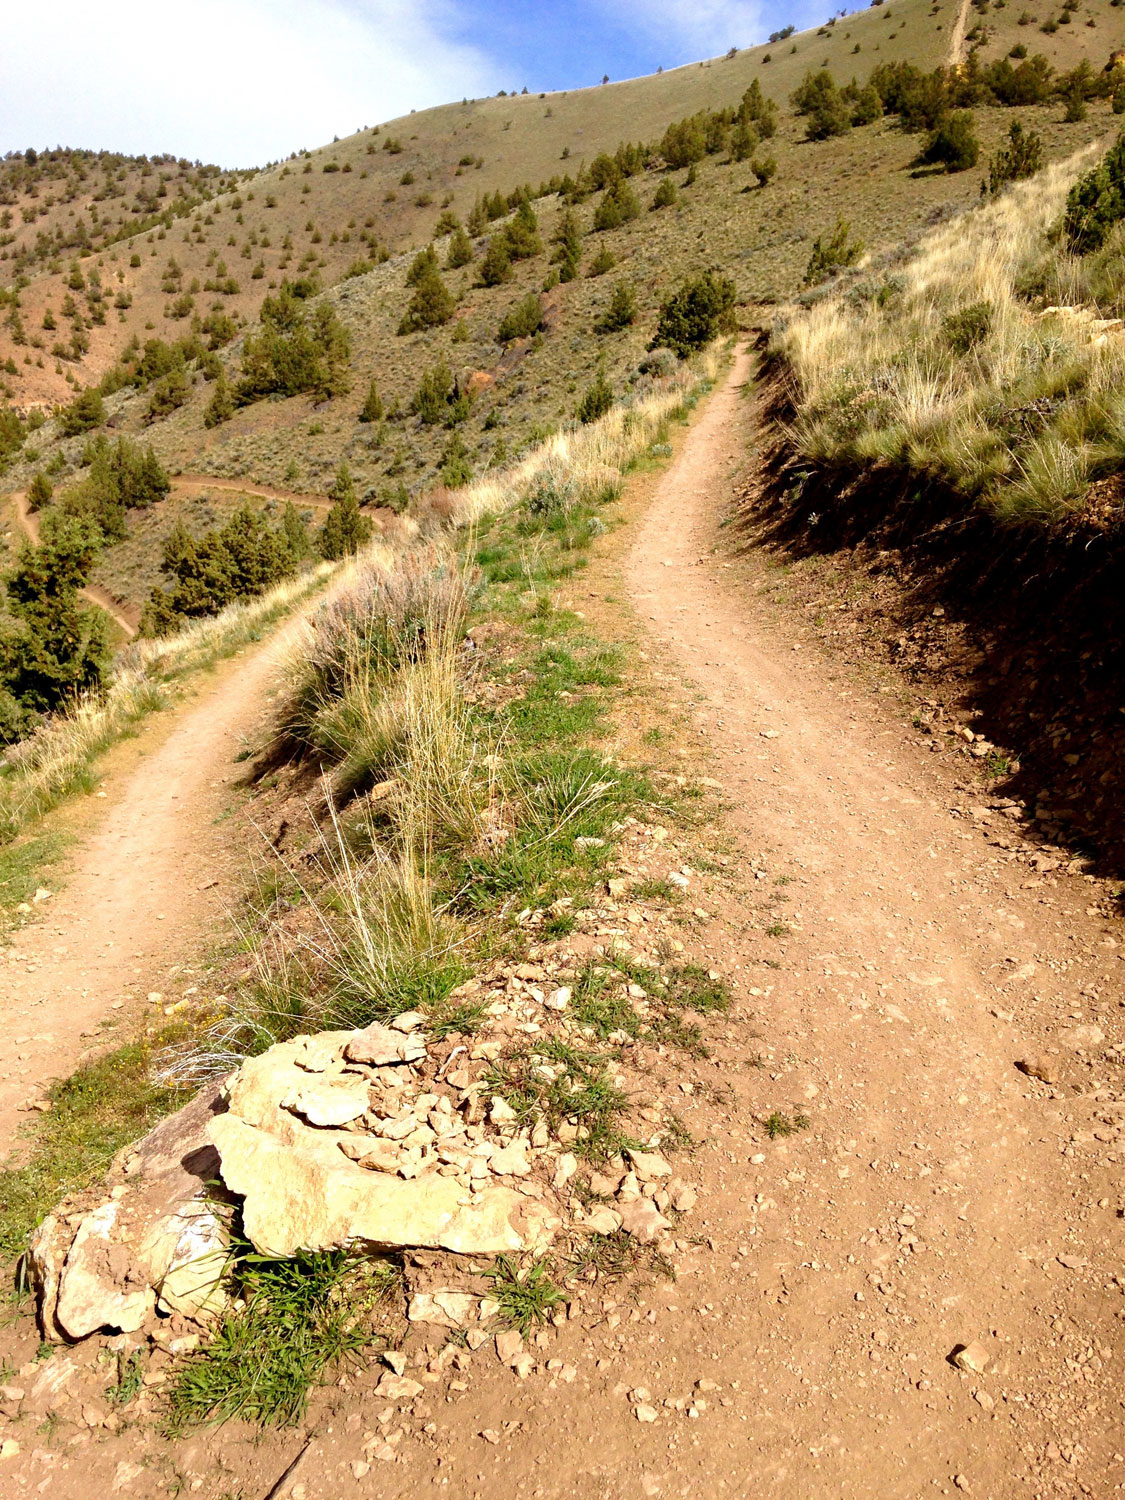 Some of the switchbacks on the Summit Trail at Smith Rock State Park can be challenging in a downhill direction for mountain bikers.